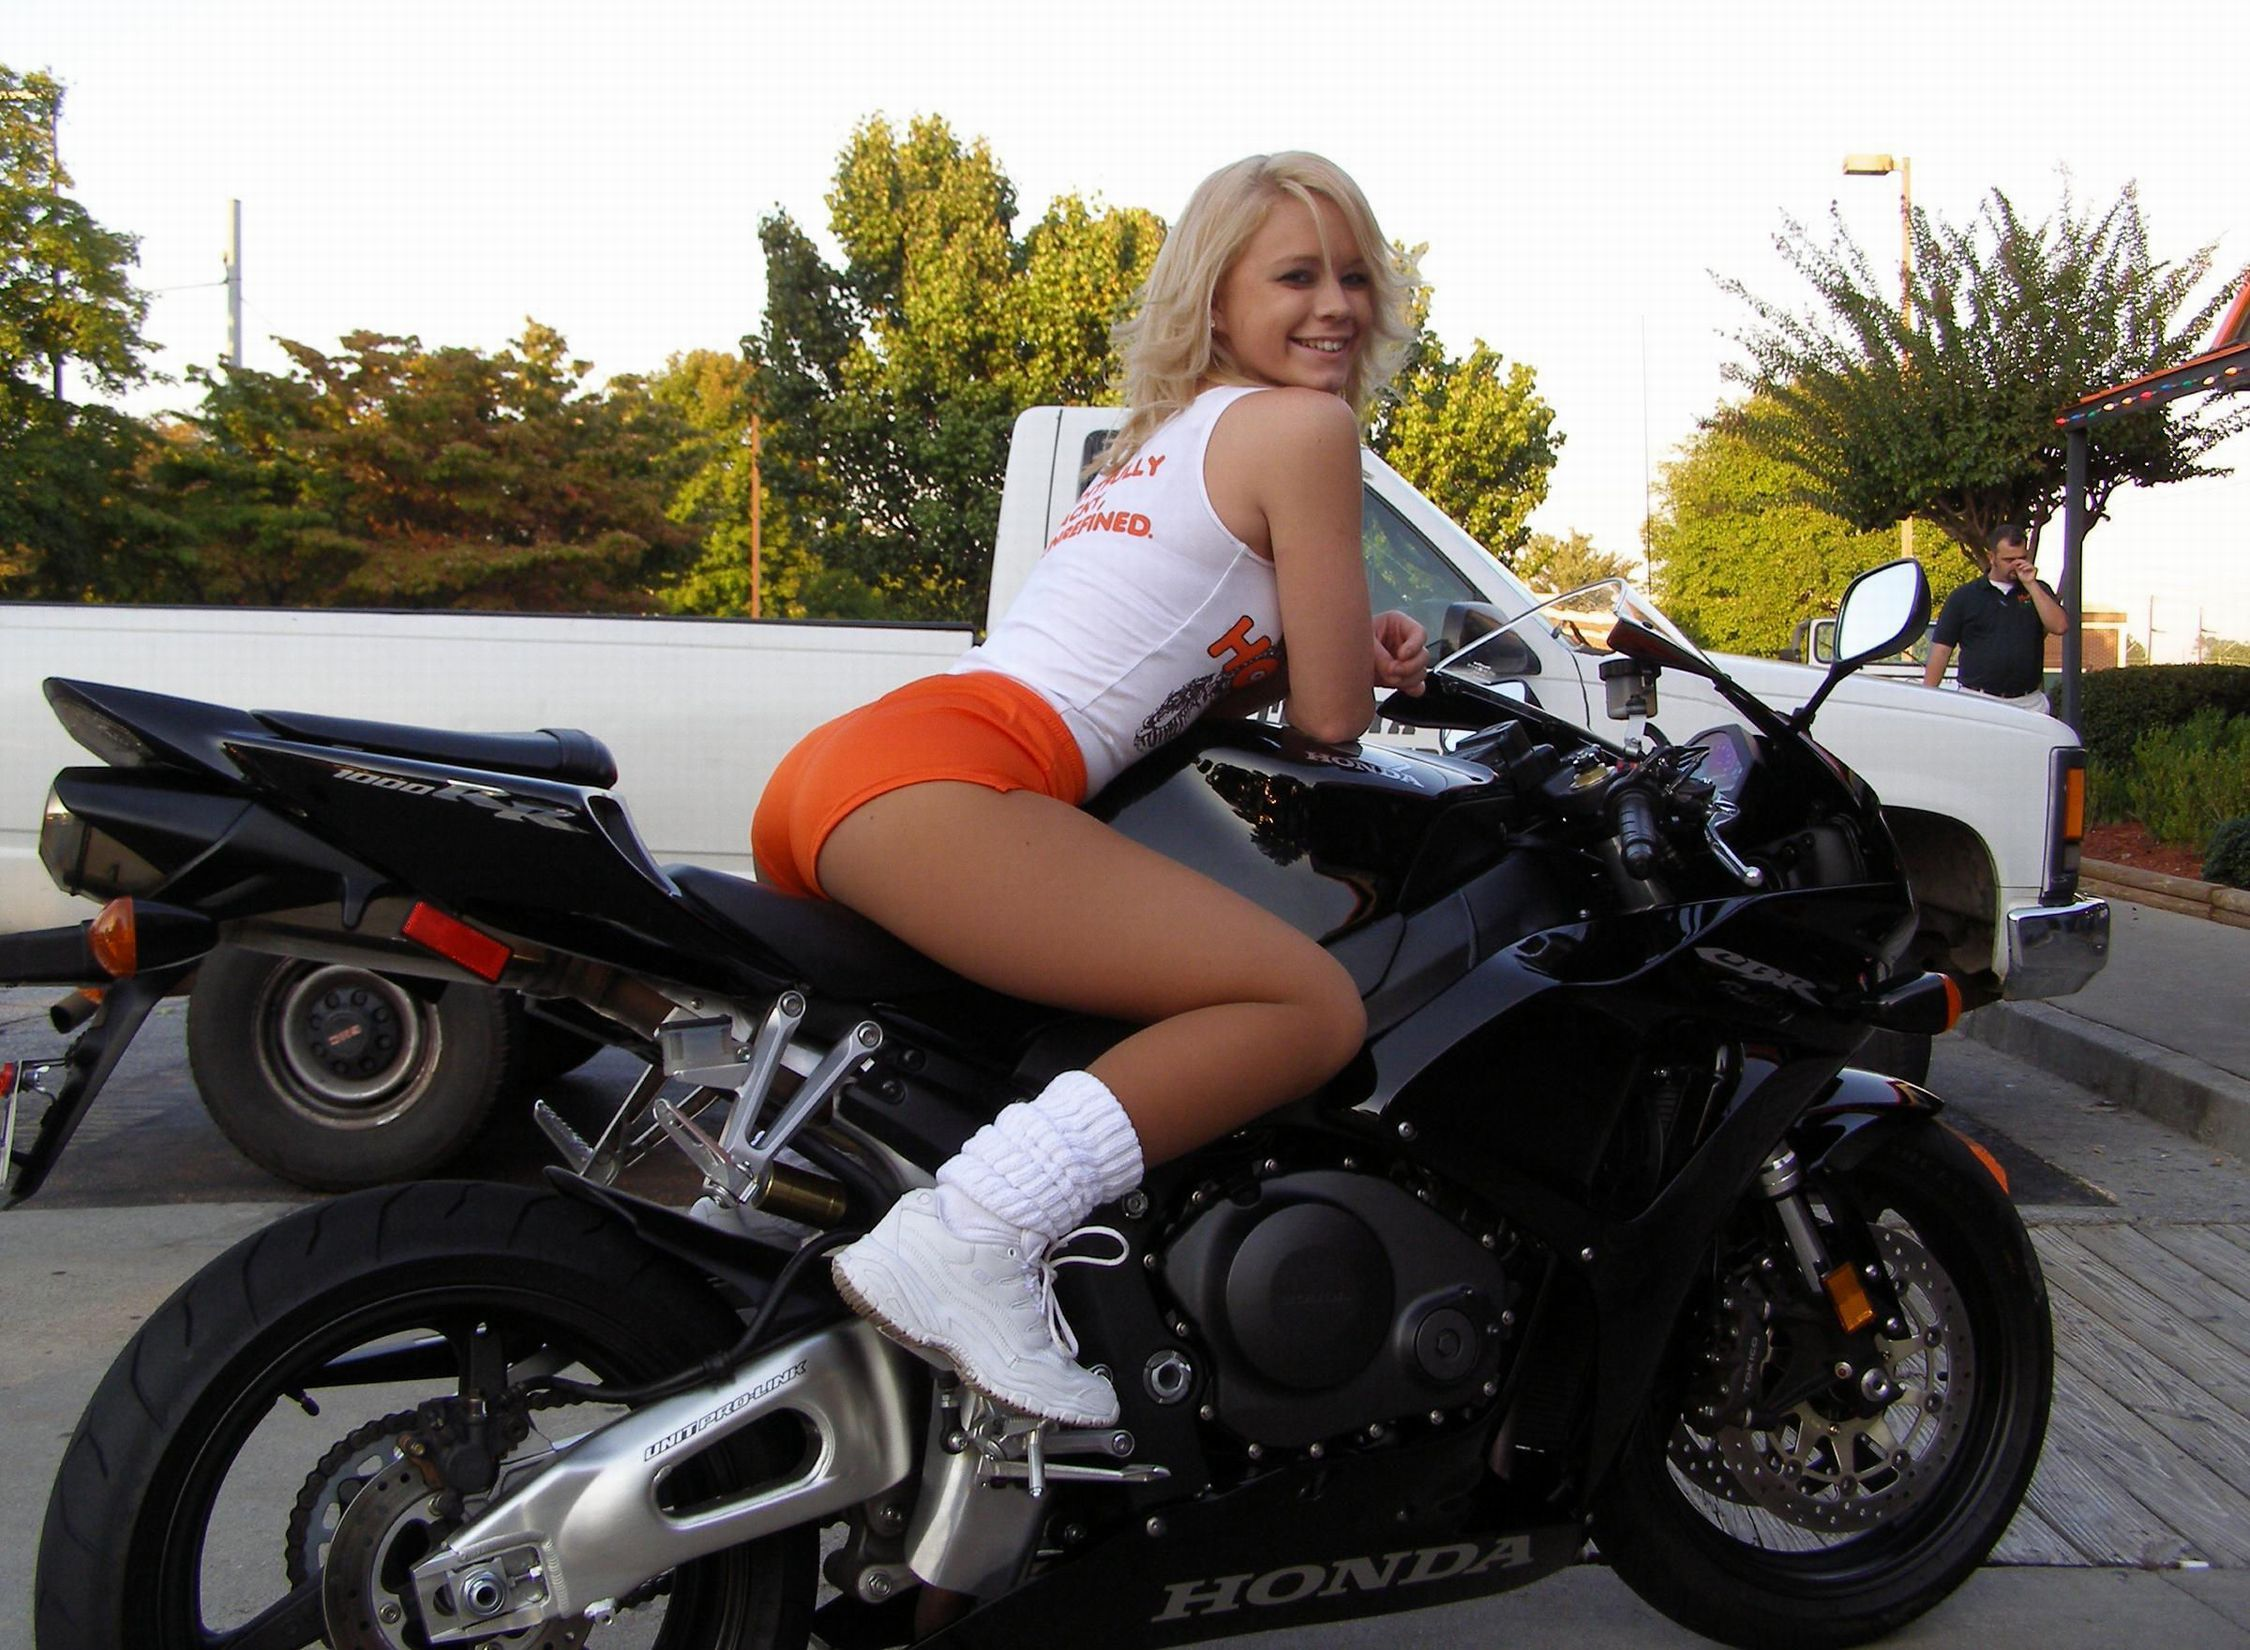 stocking babes on motorbikes